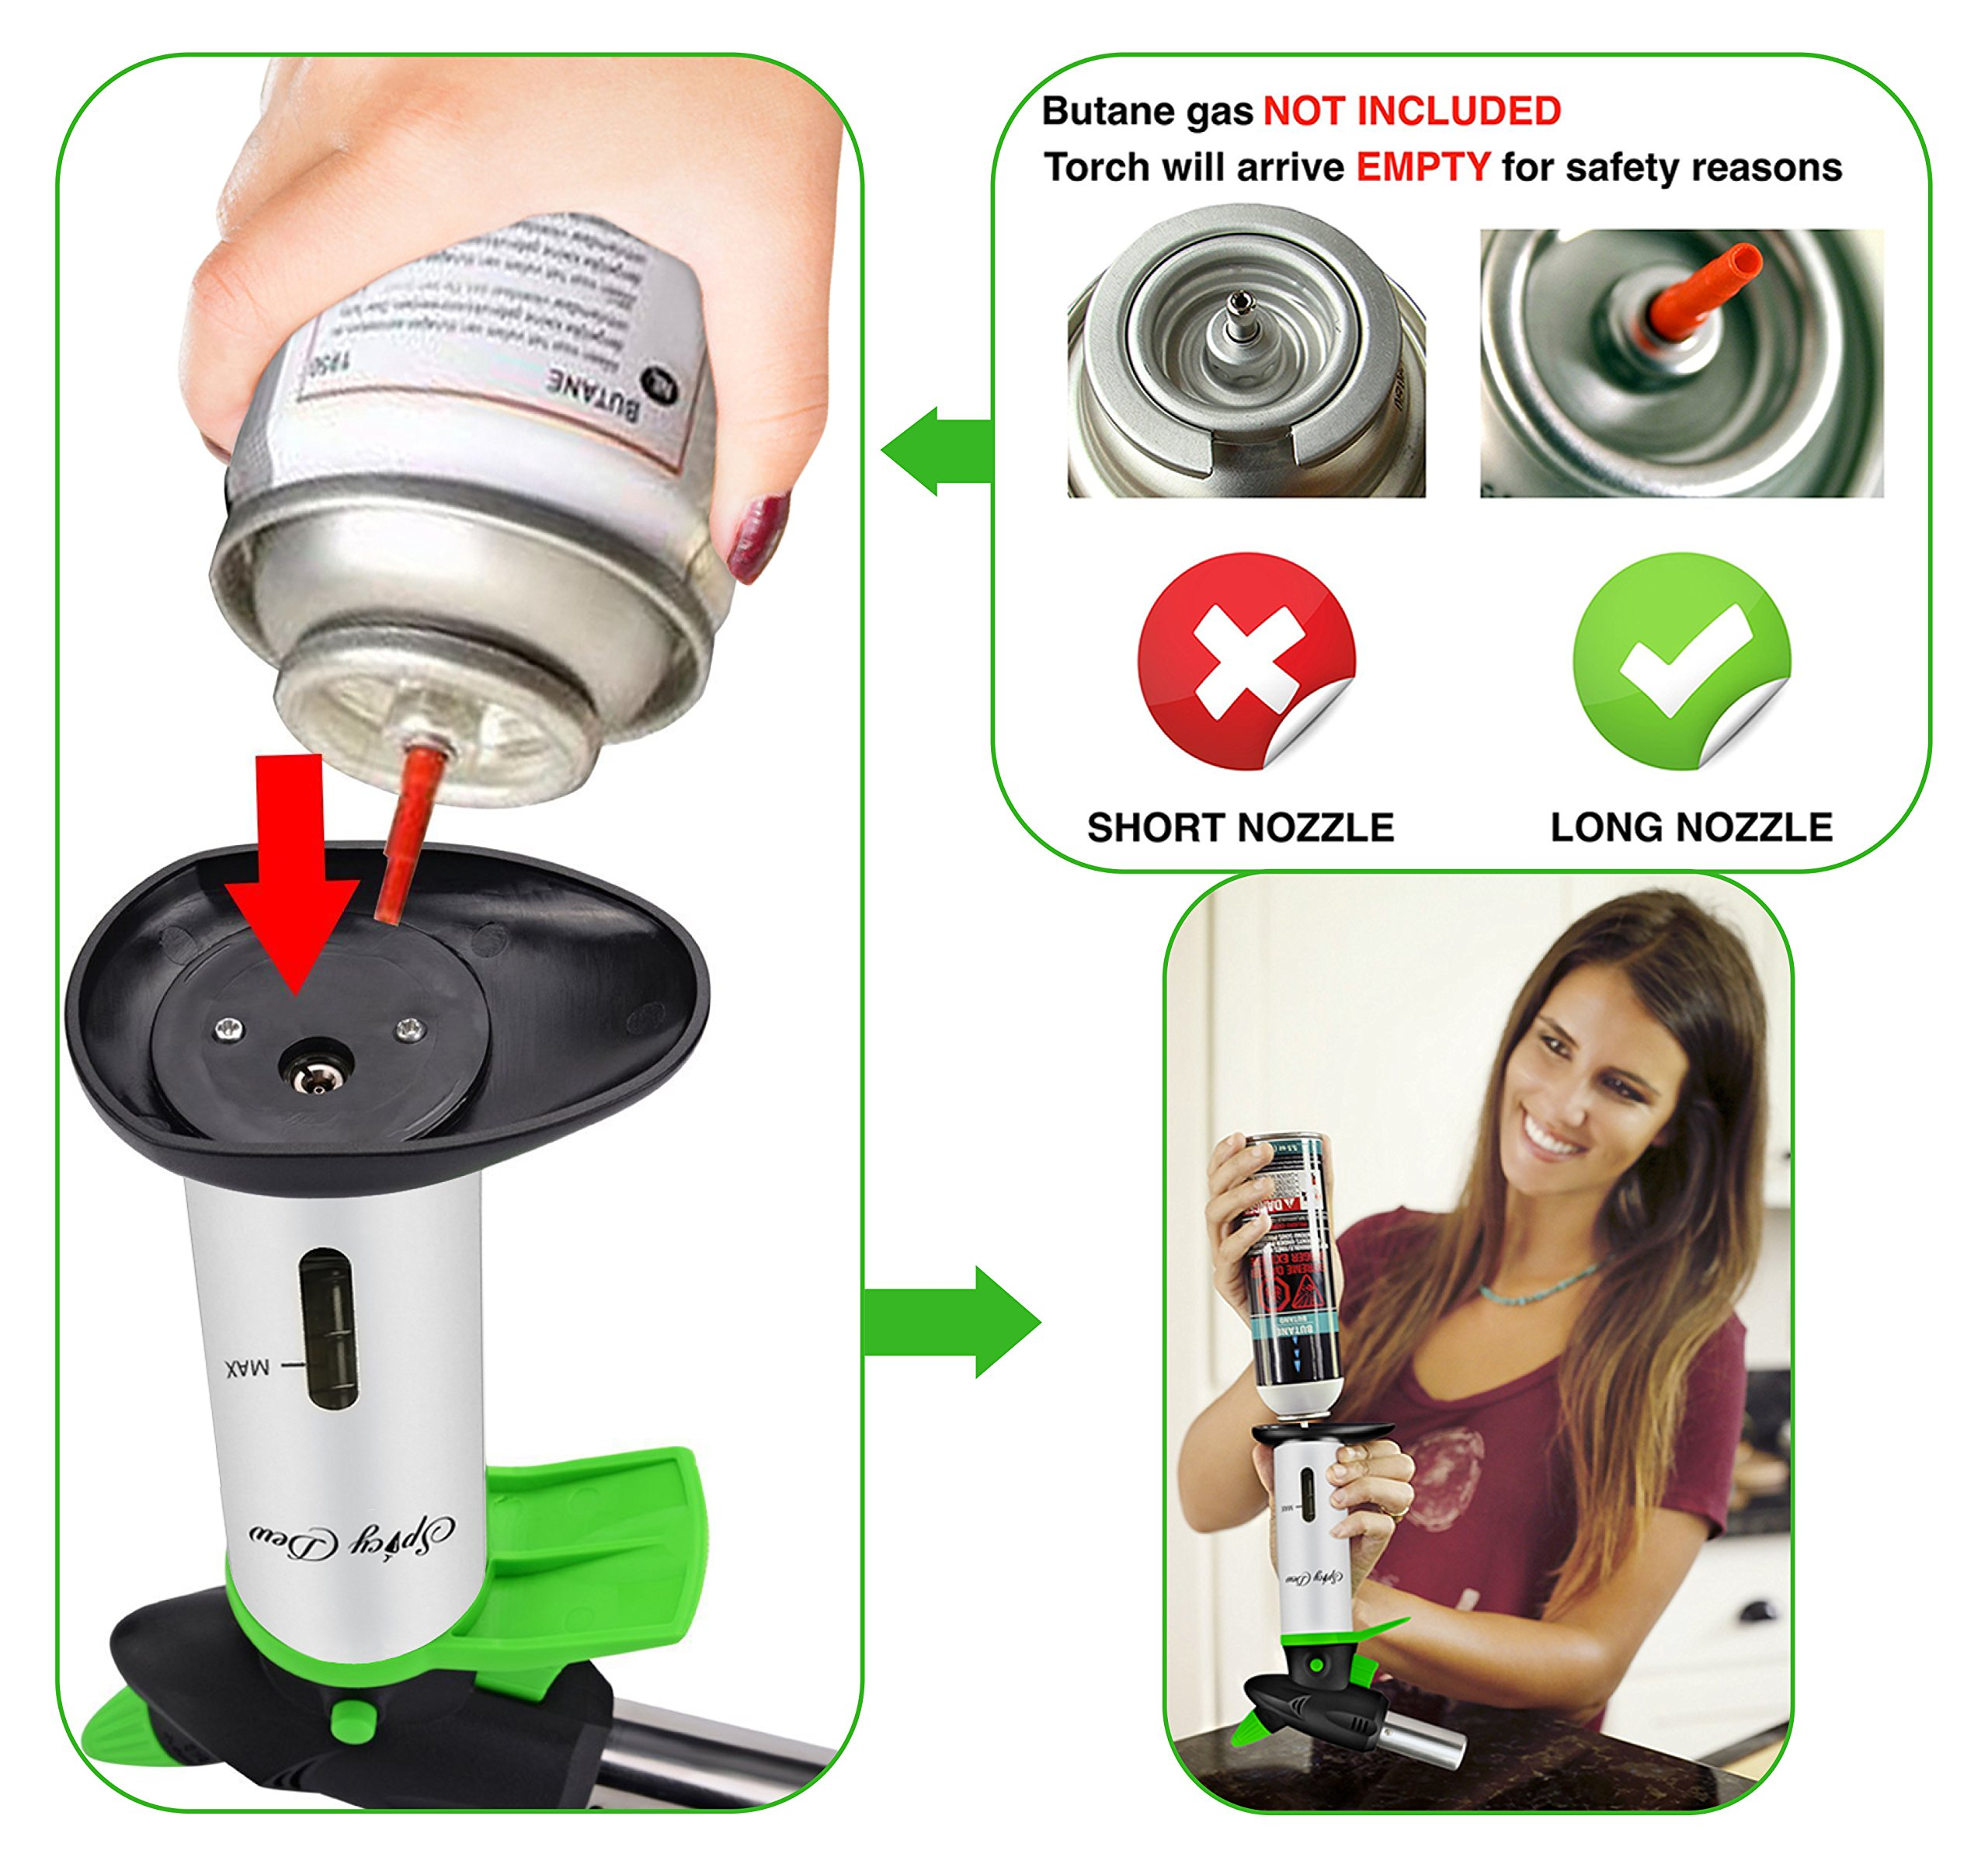 Blow Torch - Best Creme Brulee Torch - Refillable Professional Kitchen Torch with Safety Lock and Adjustable Flame - Culinary Torch - Micro Butane Torch with Fuel Gauge - Cooking Torch - Food Torch by Spicy Dew (Image #6)